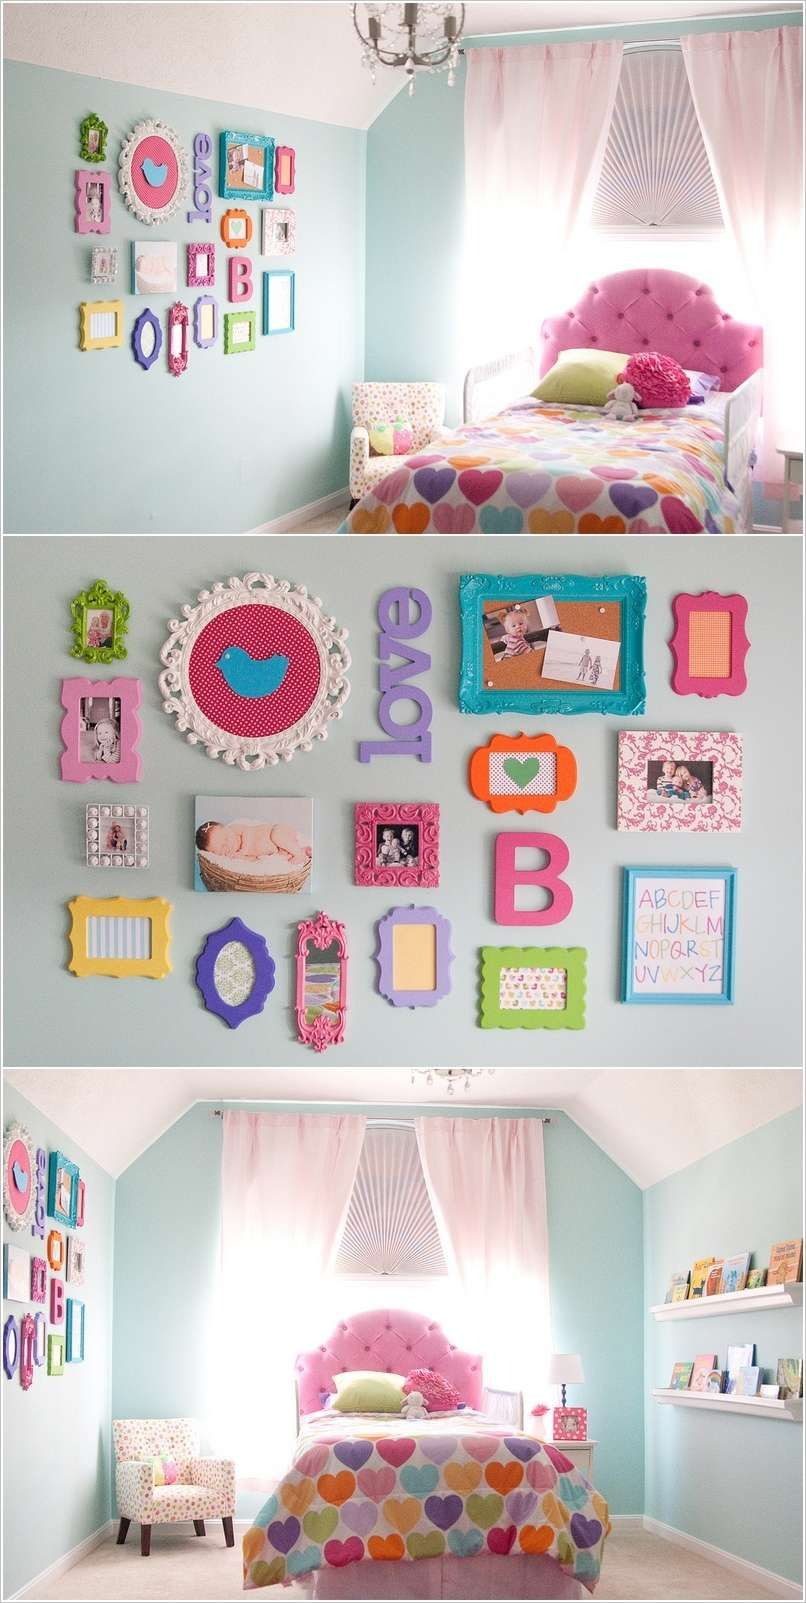 20+ More Girls Bedroom Decor Ideas | Nook, Painted picture frames ...